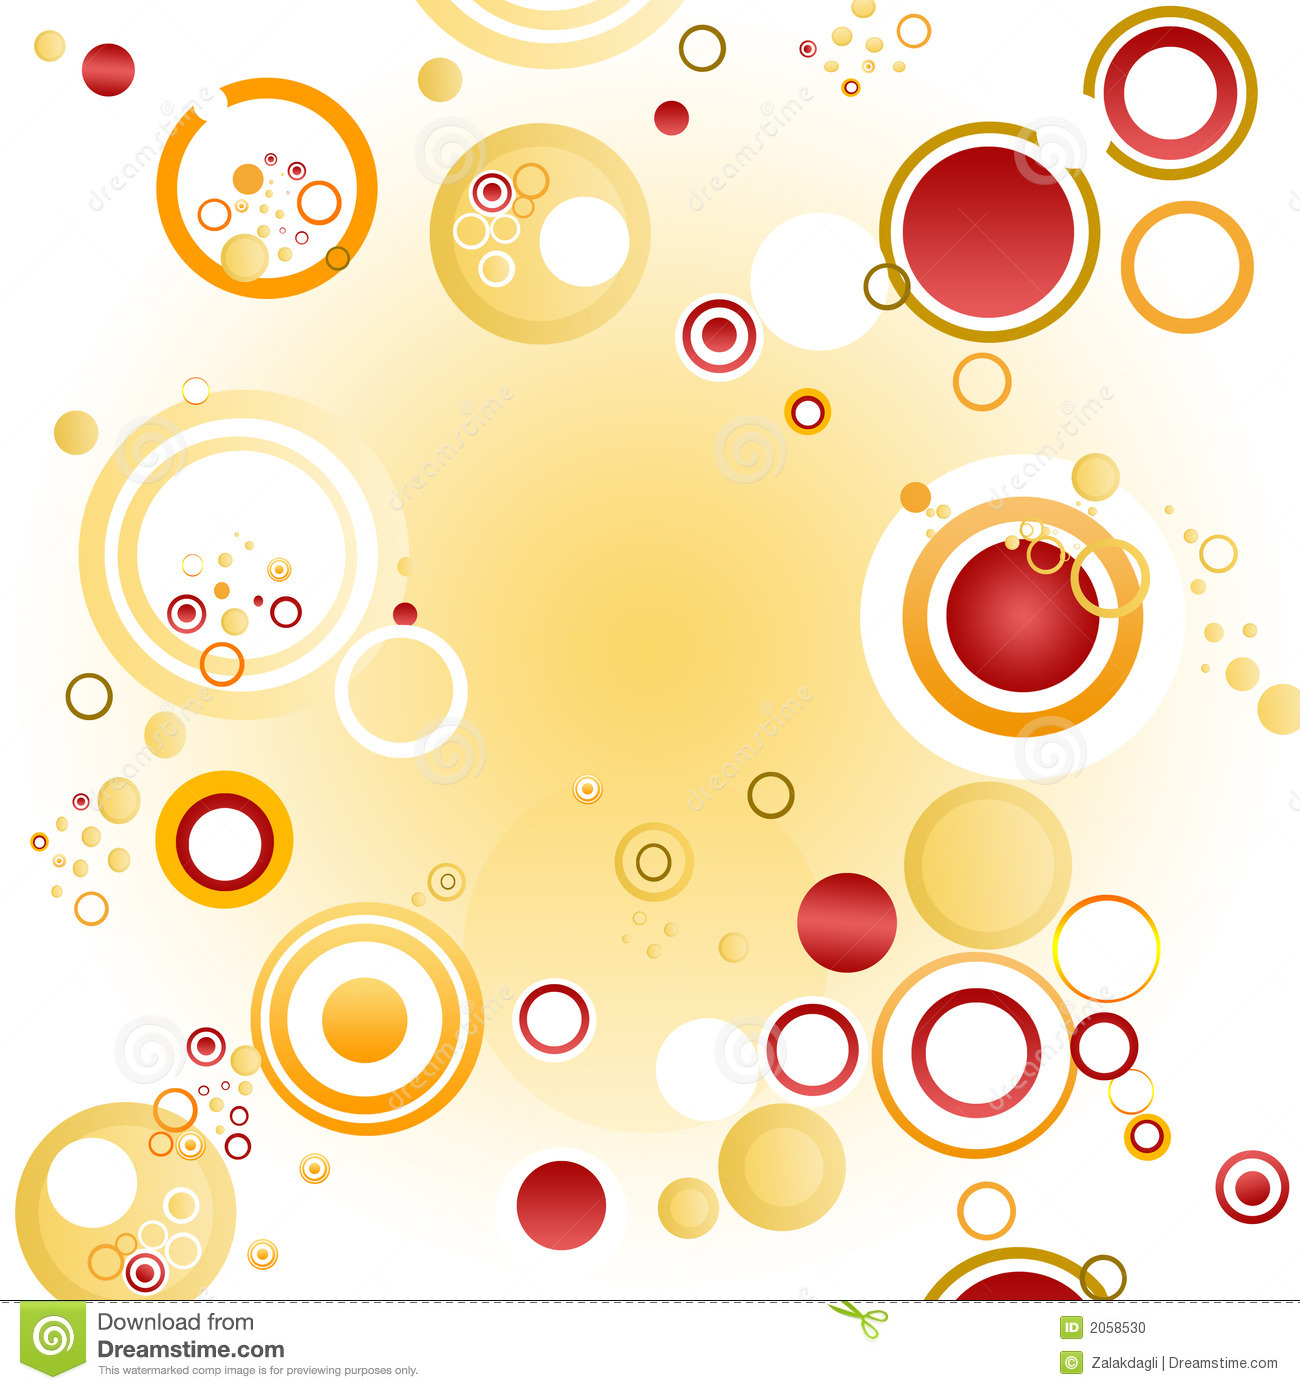 Background Art Design : Abstract accent art background design stock photo